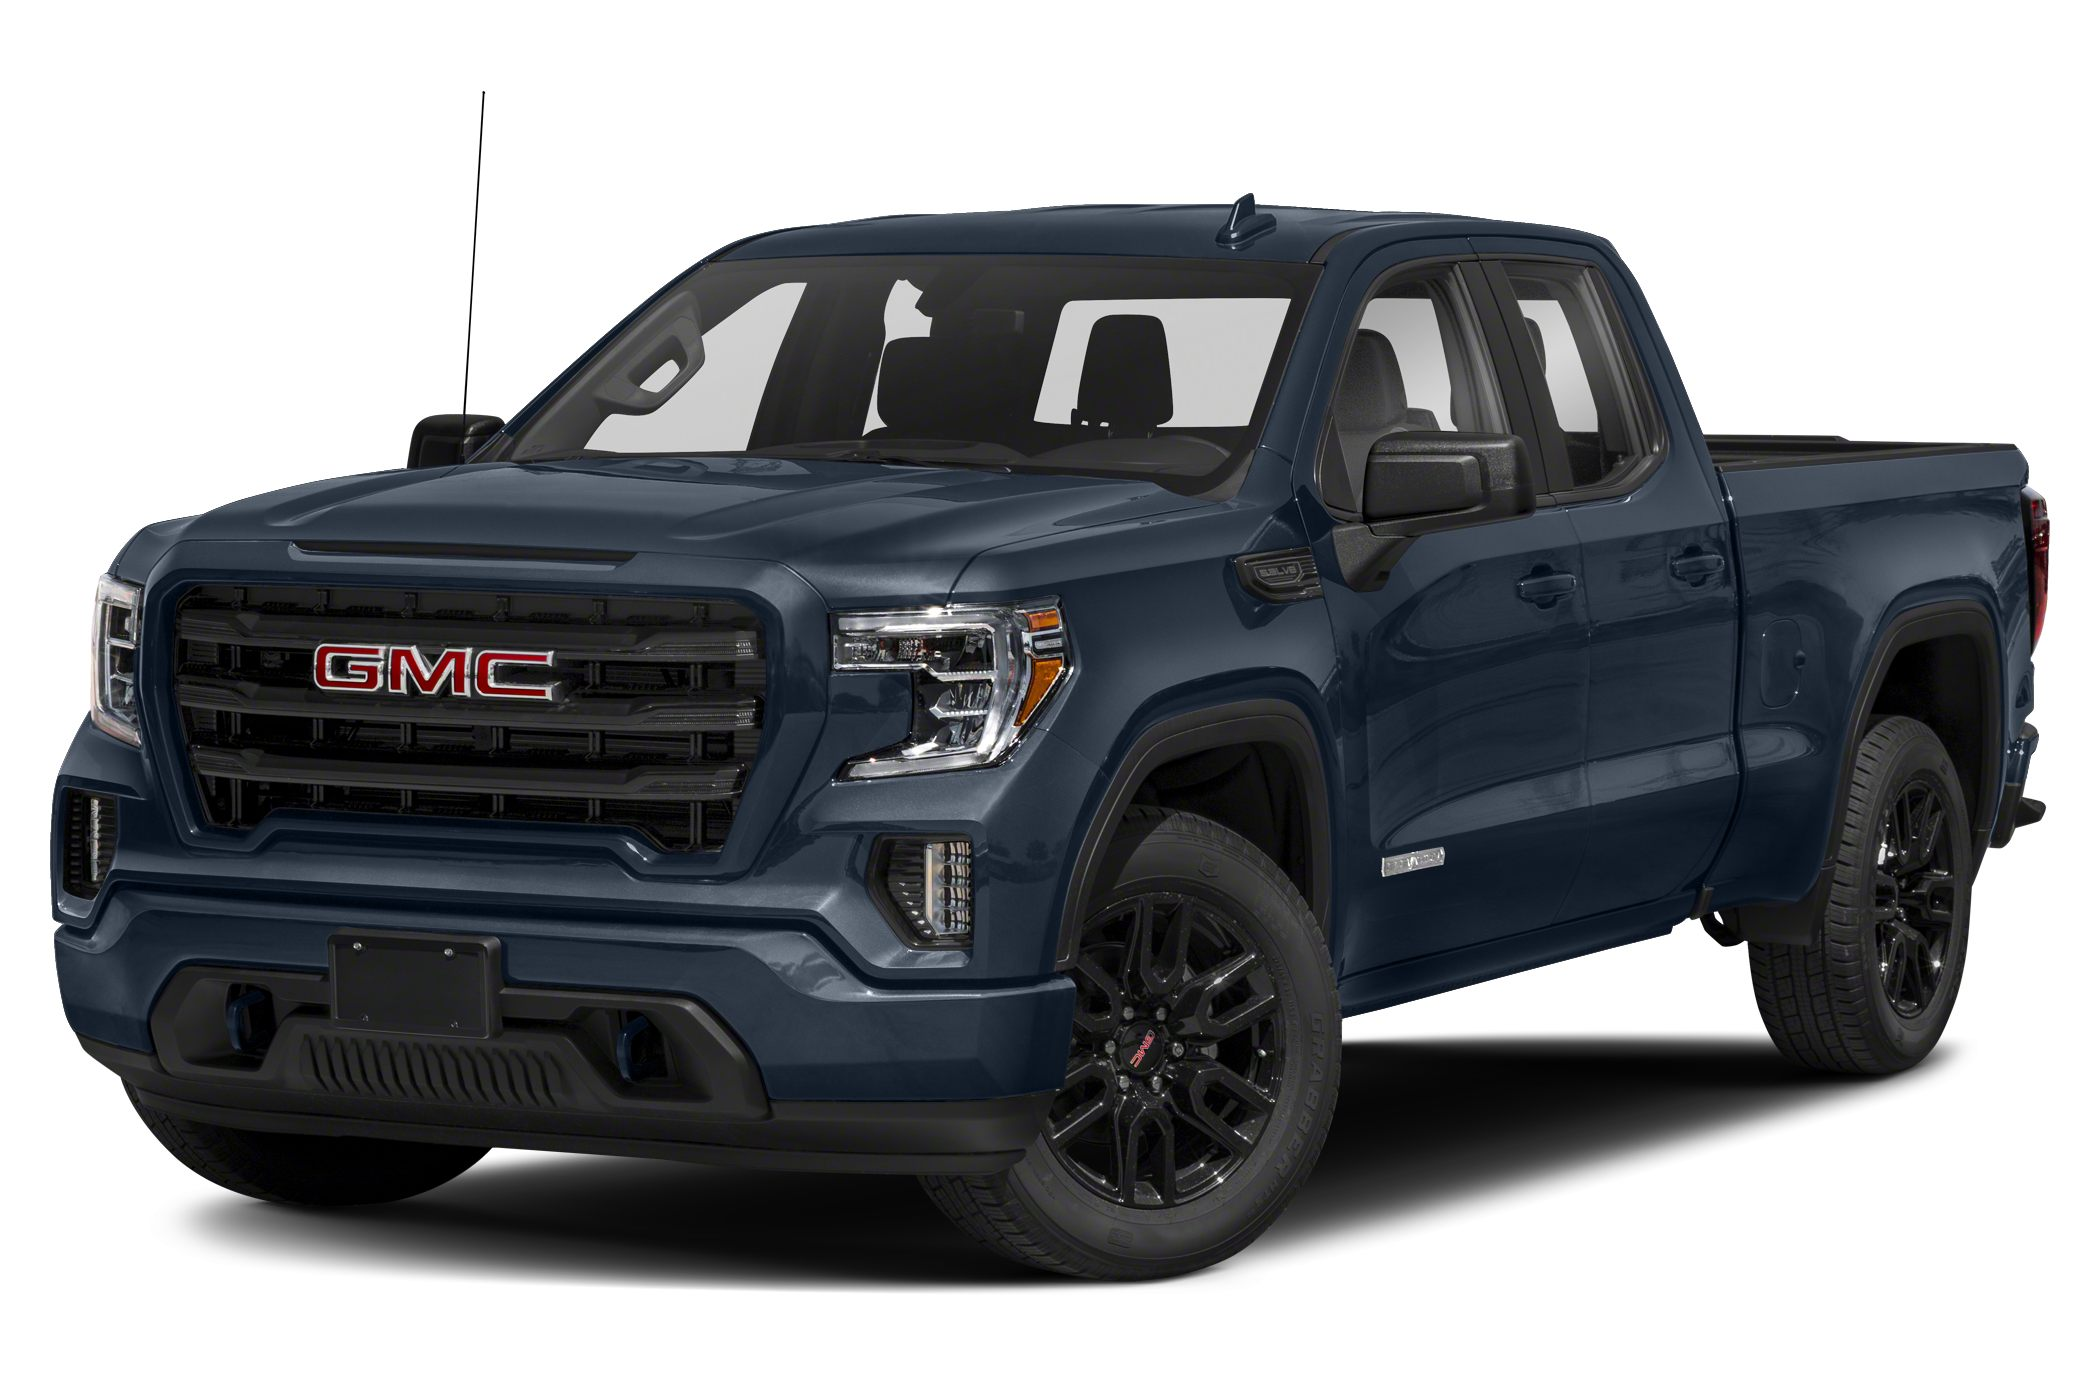 2020 Gmc Sierra 1500 Elevation 4x4 Double Cab 6 6 Ft Box 147 4 In Wb Pricing And Options